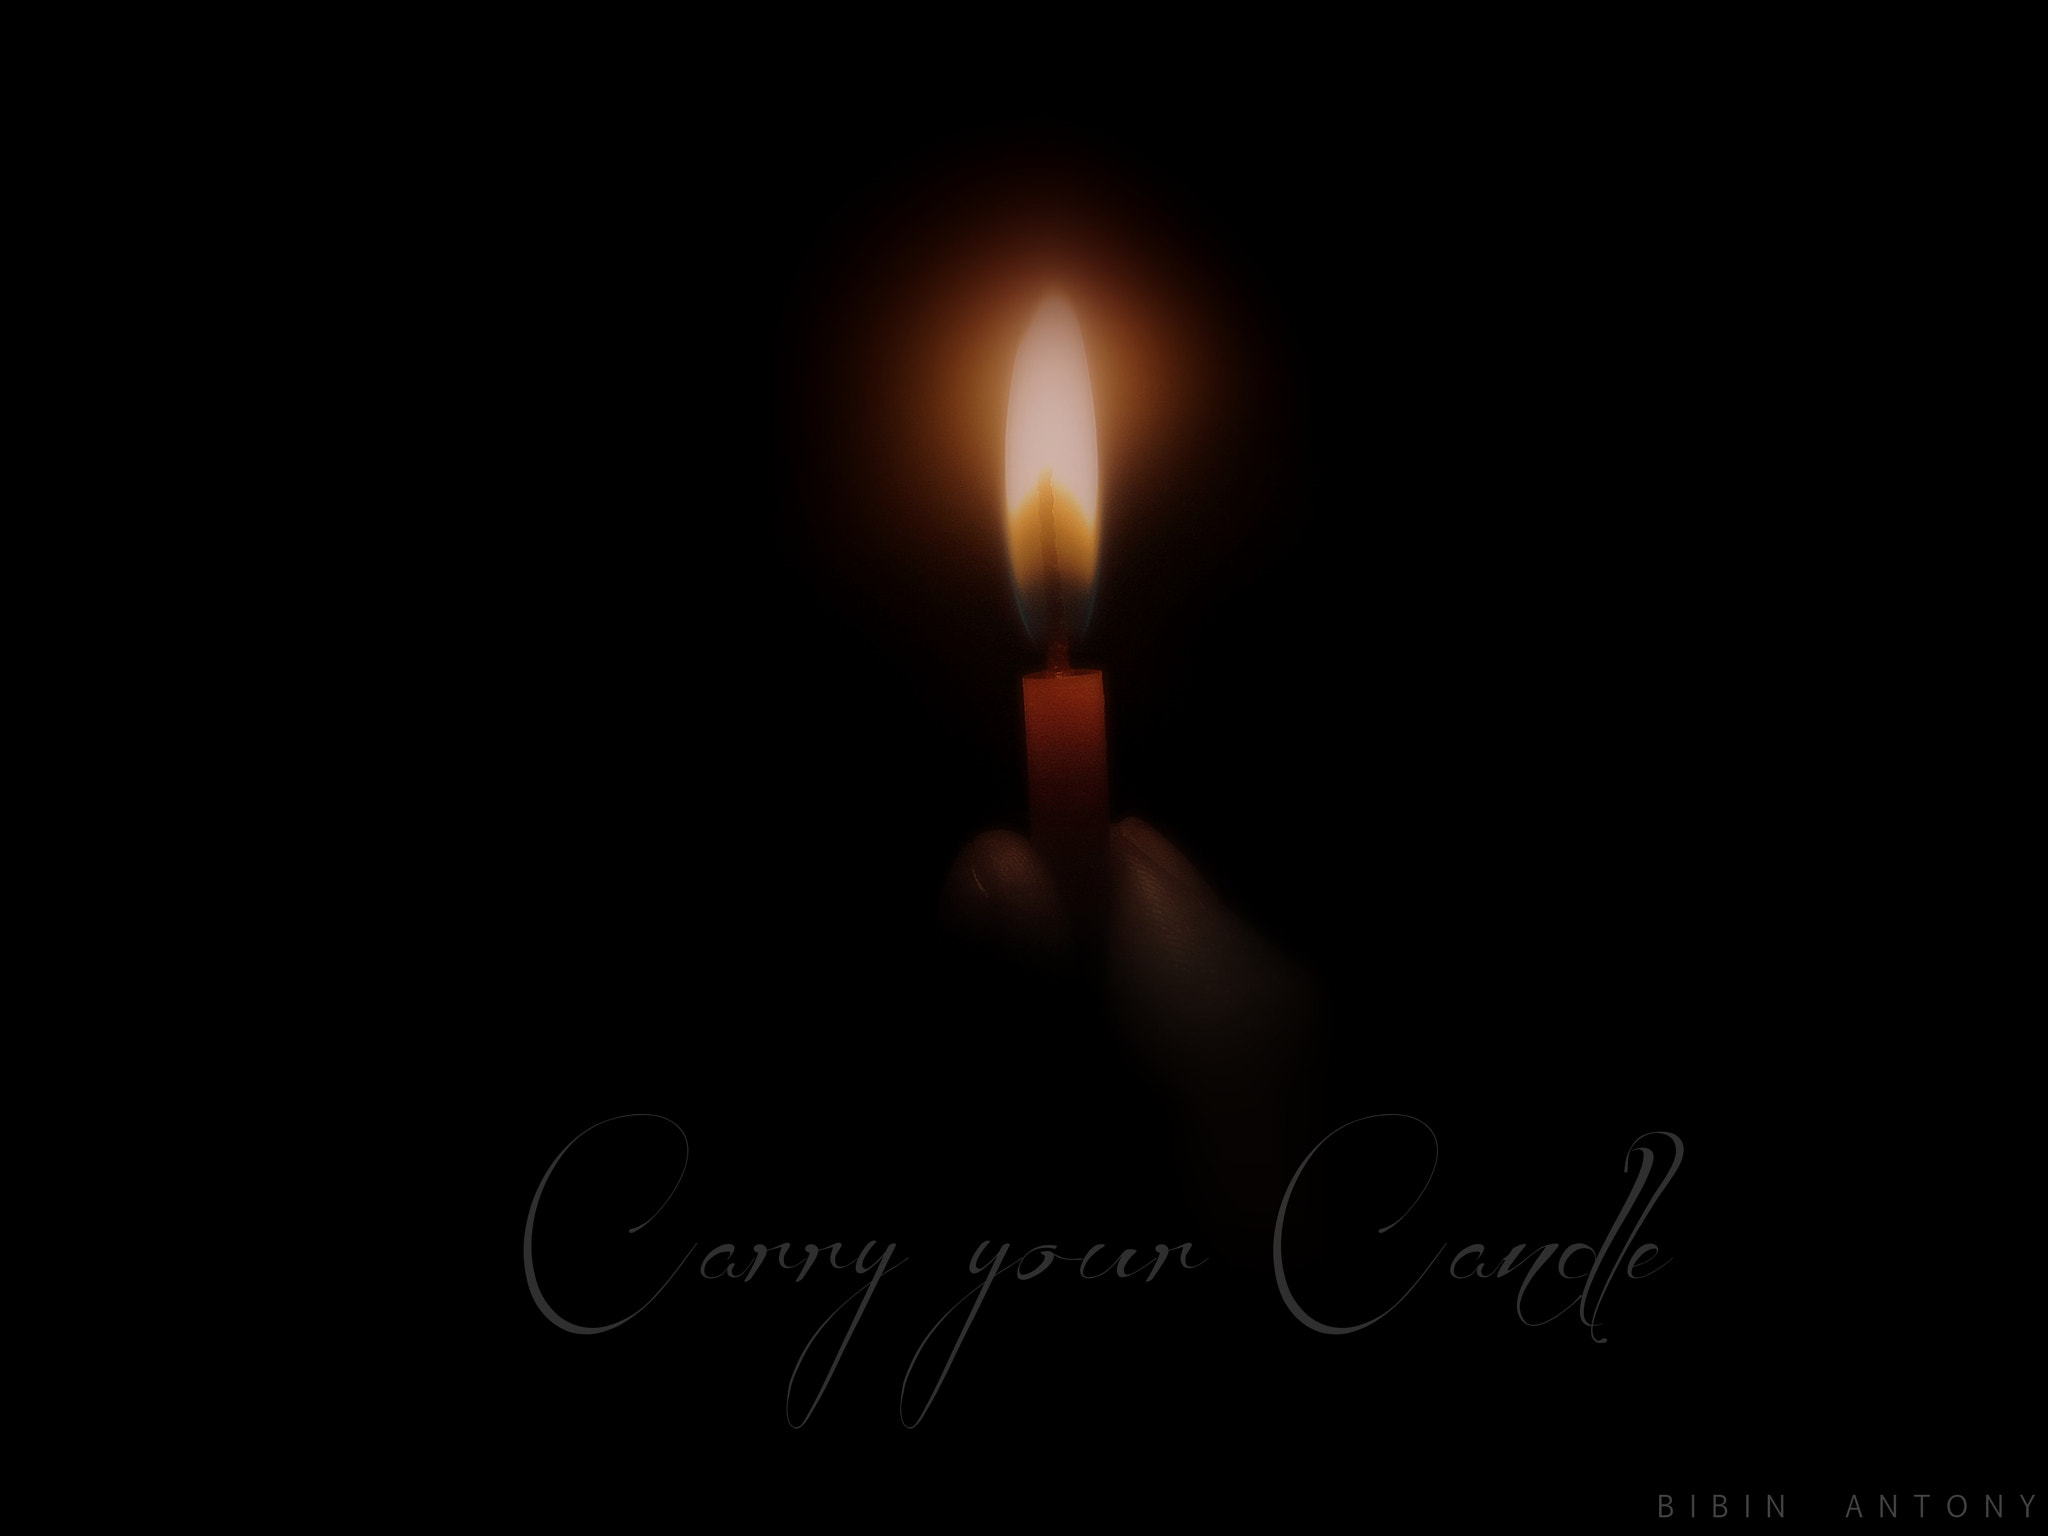 Photograph Carry your Candle.... by Bibin Antony on 500px